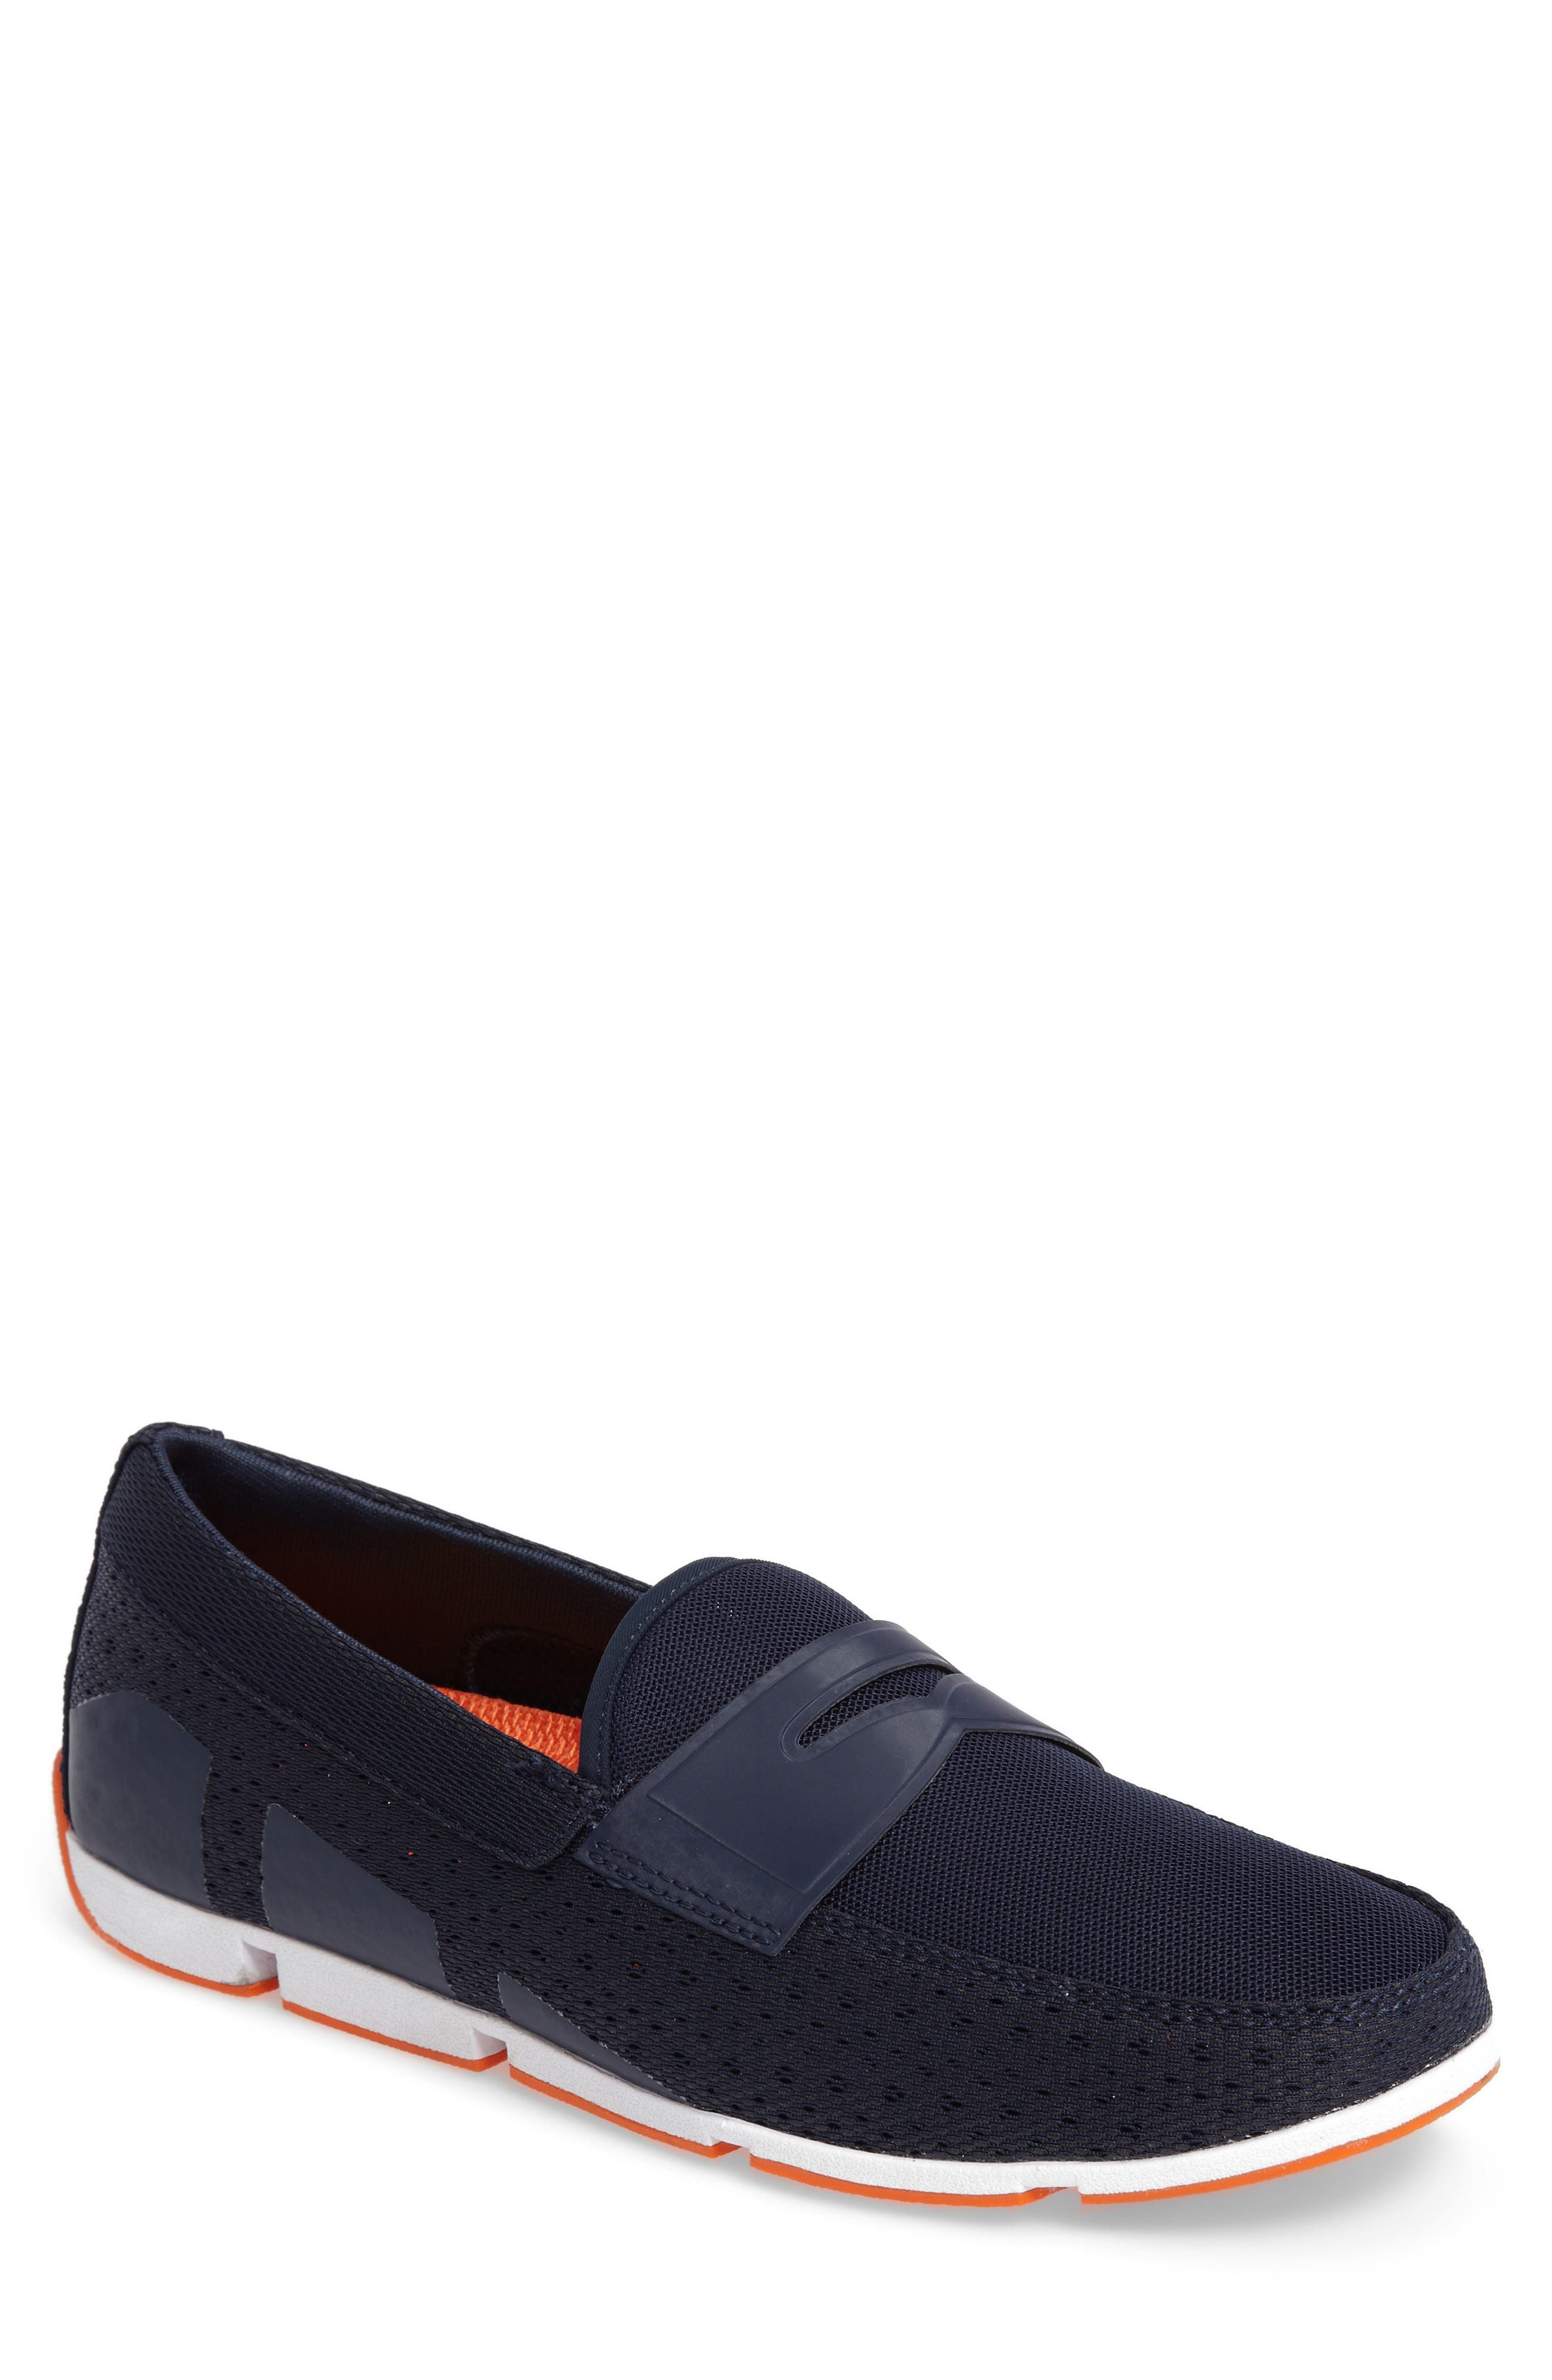 Breeze Penny Loafer,                             Main thumbnail 5, color,